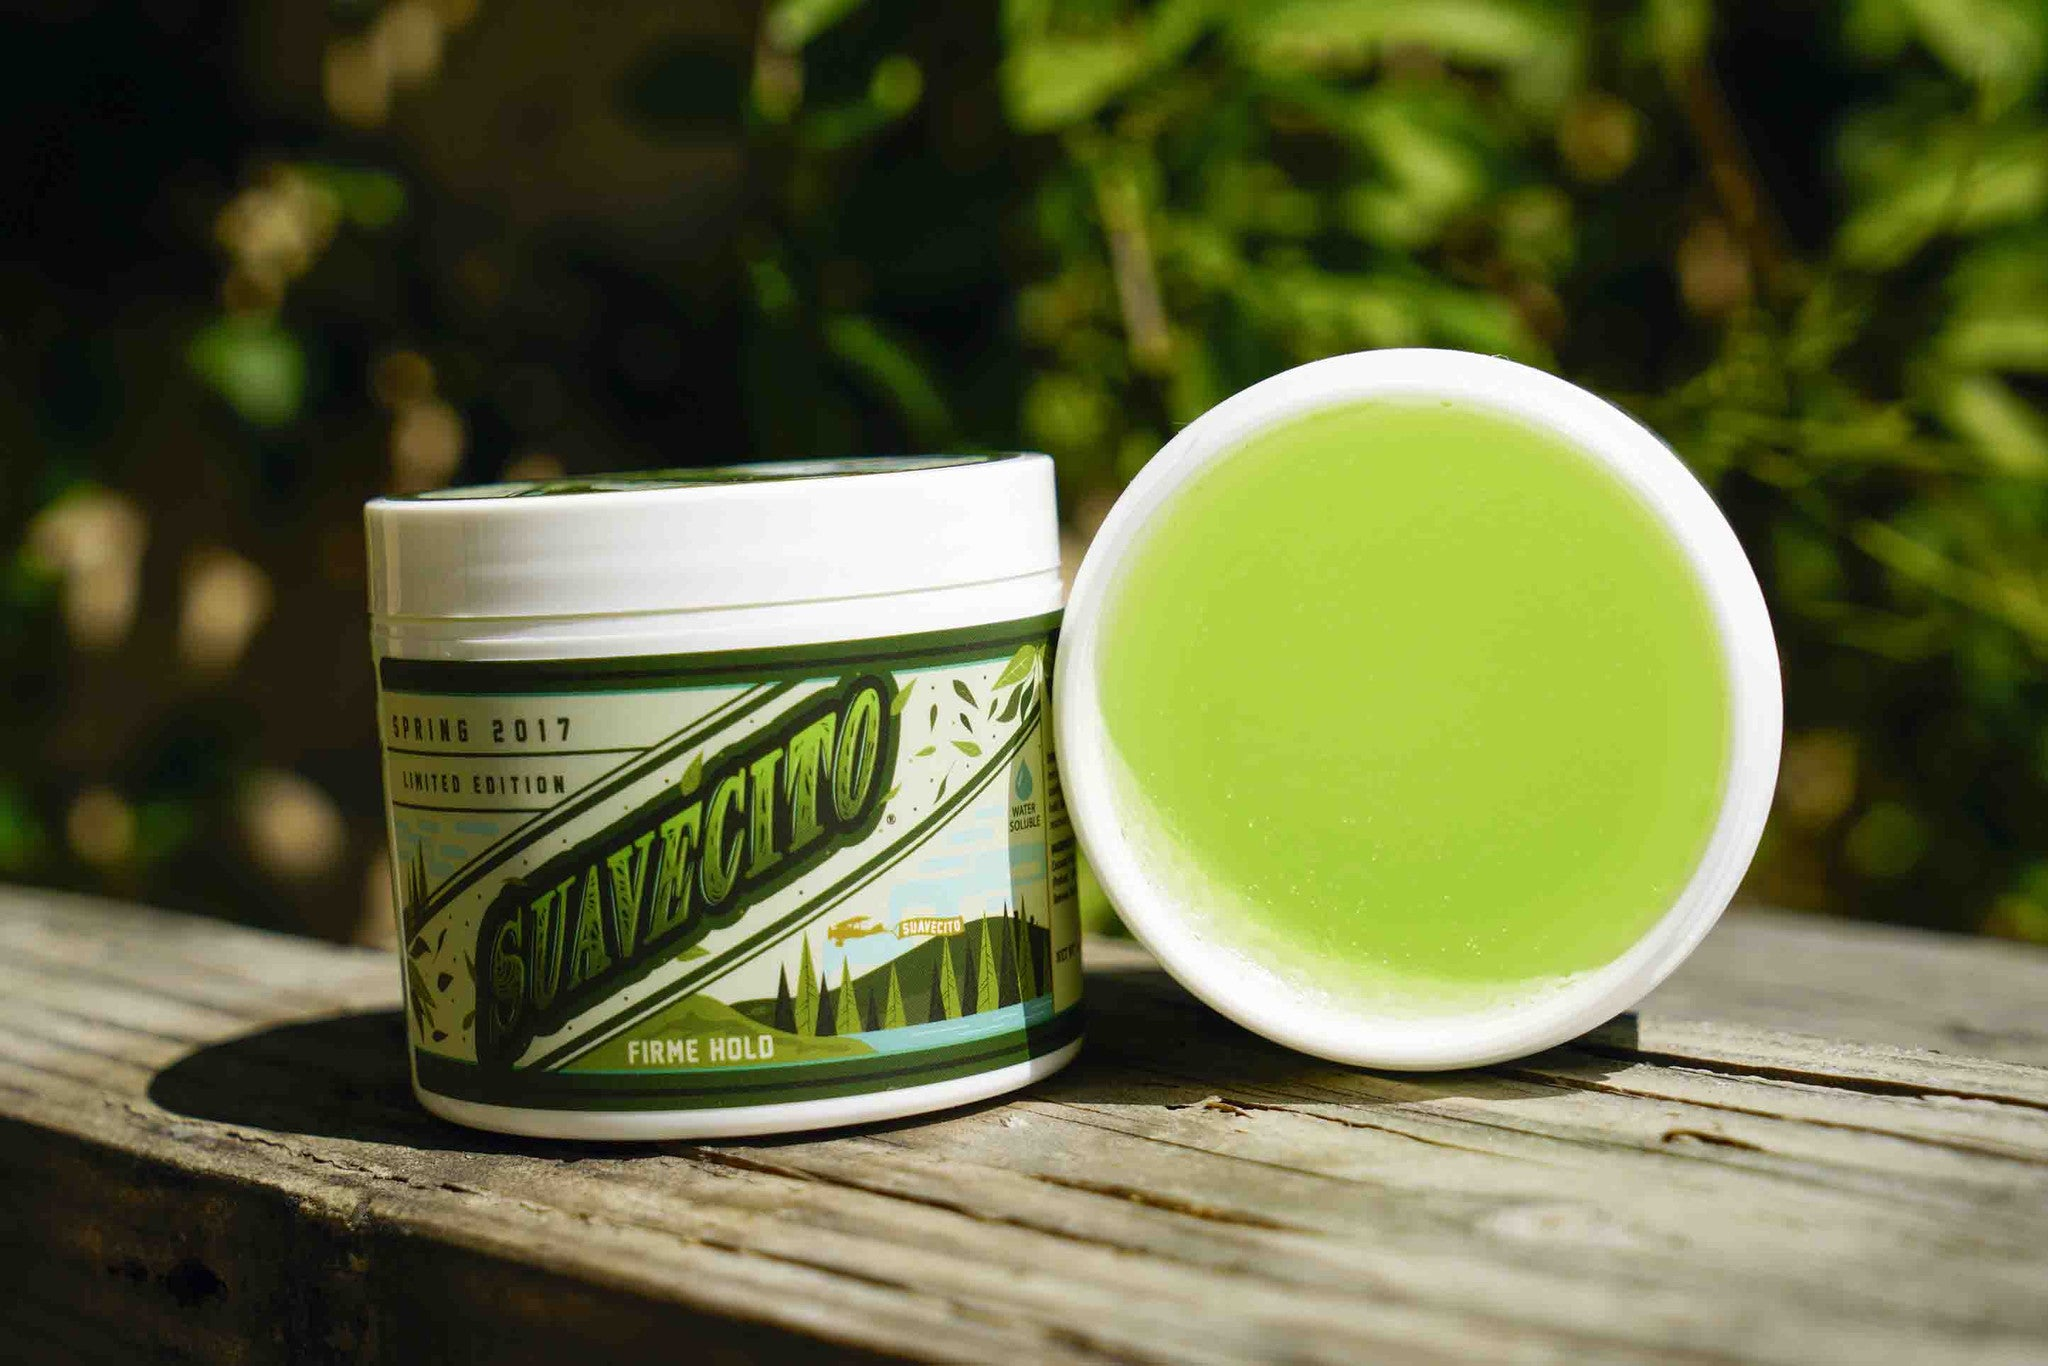 Eucalyptus Parsley - Spring Pomade - Bench suavecito pomade seasonal pomade